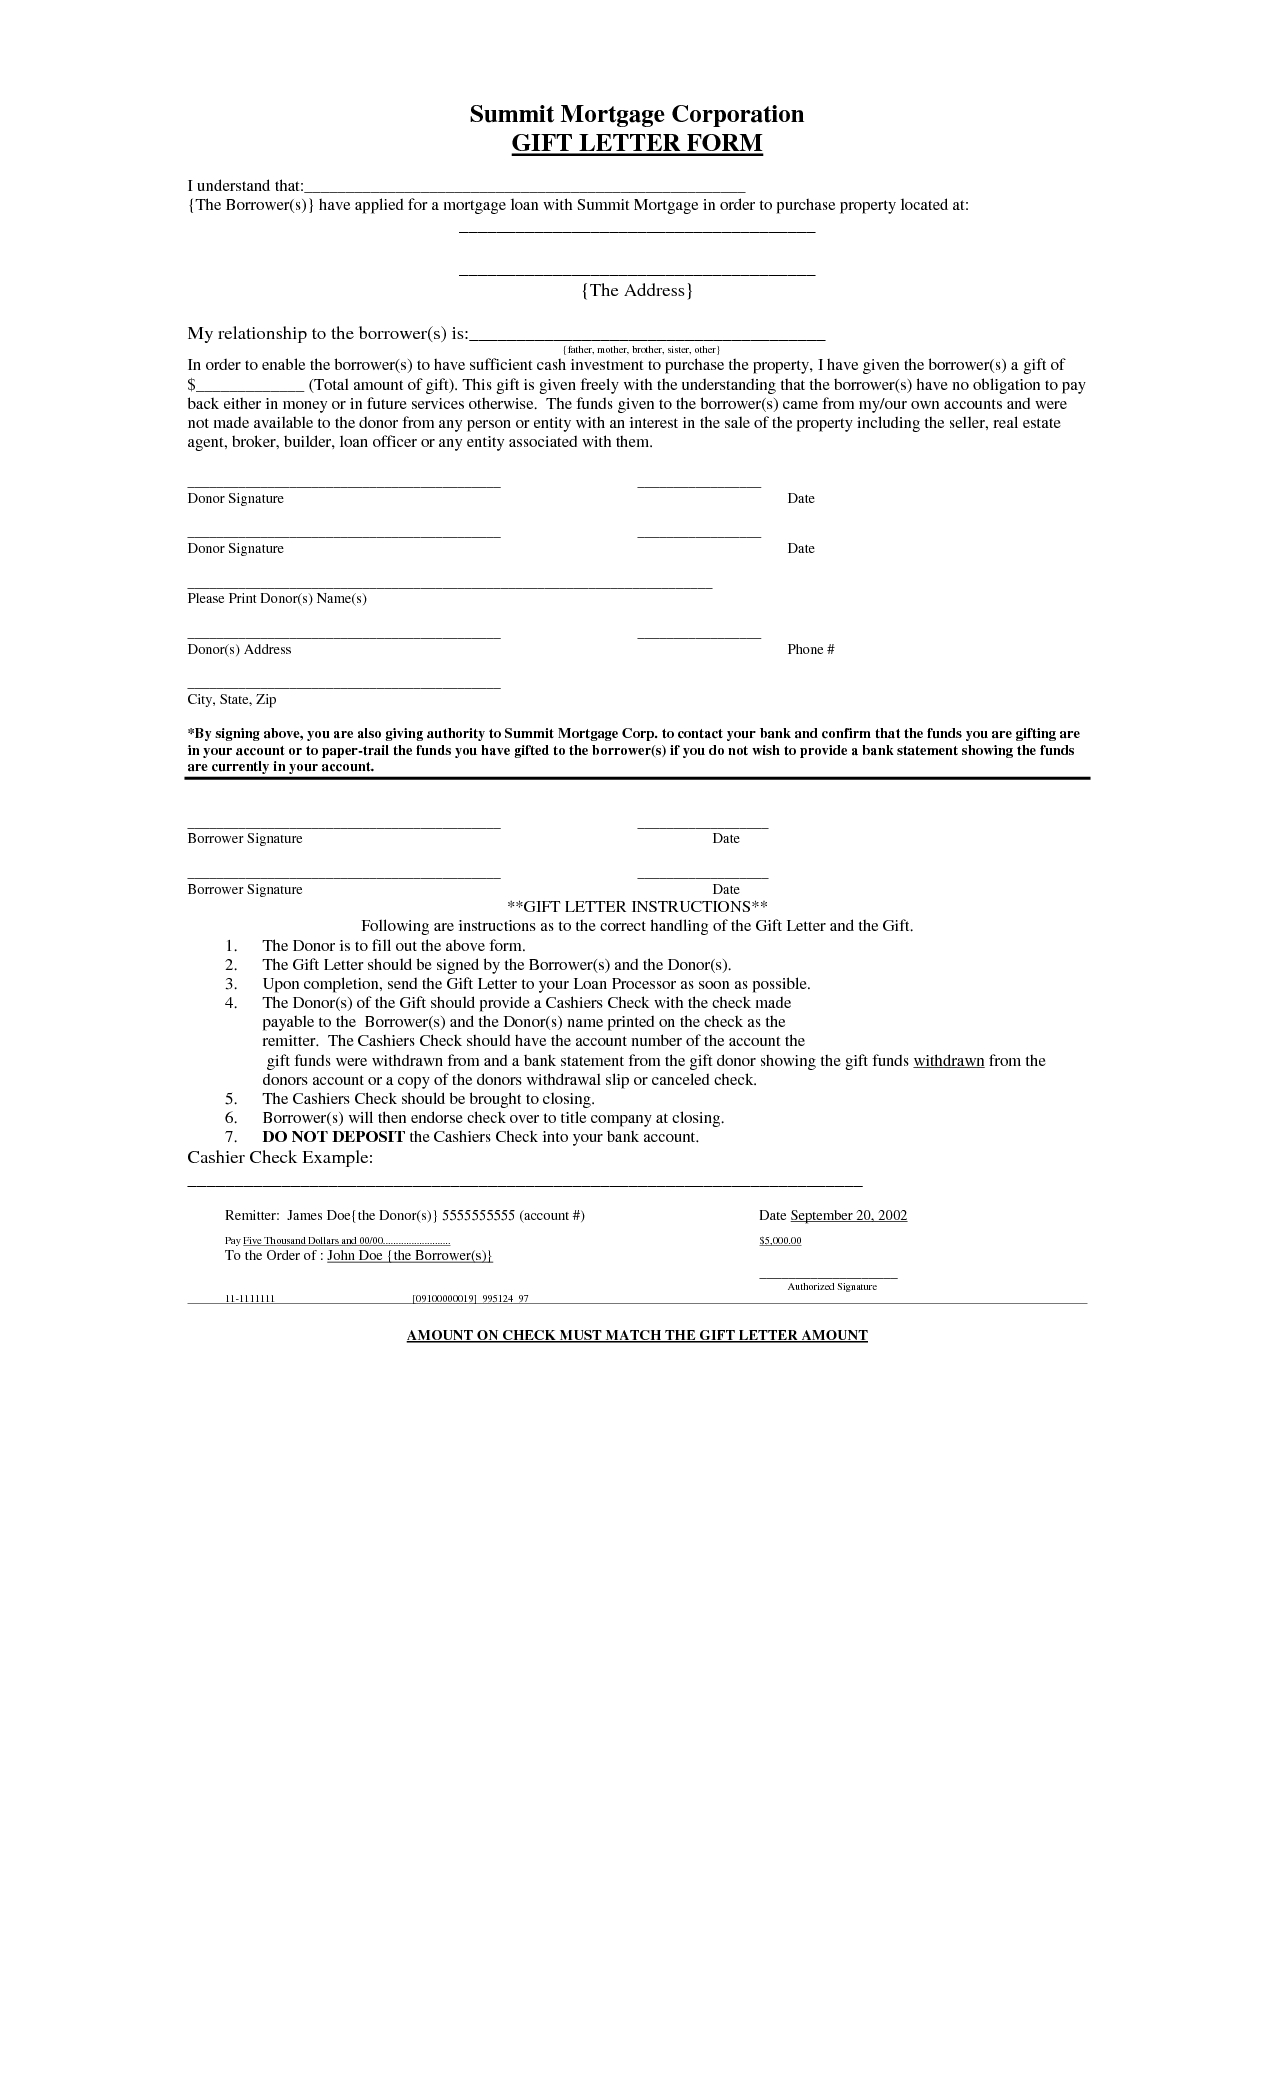 Fha Gift Letter Template - Free Cover Letter Templates Mortgage T Letter Template